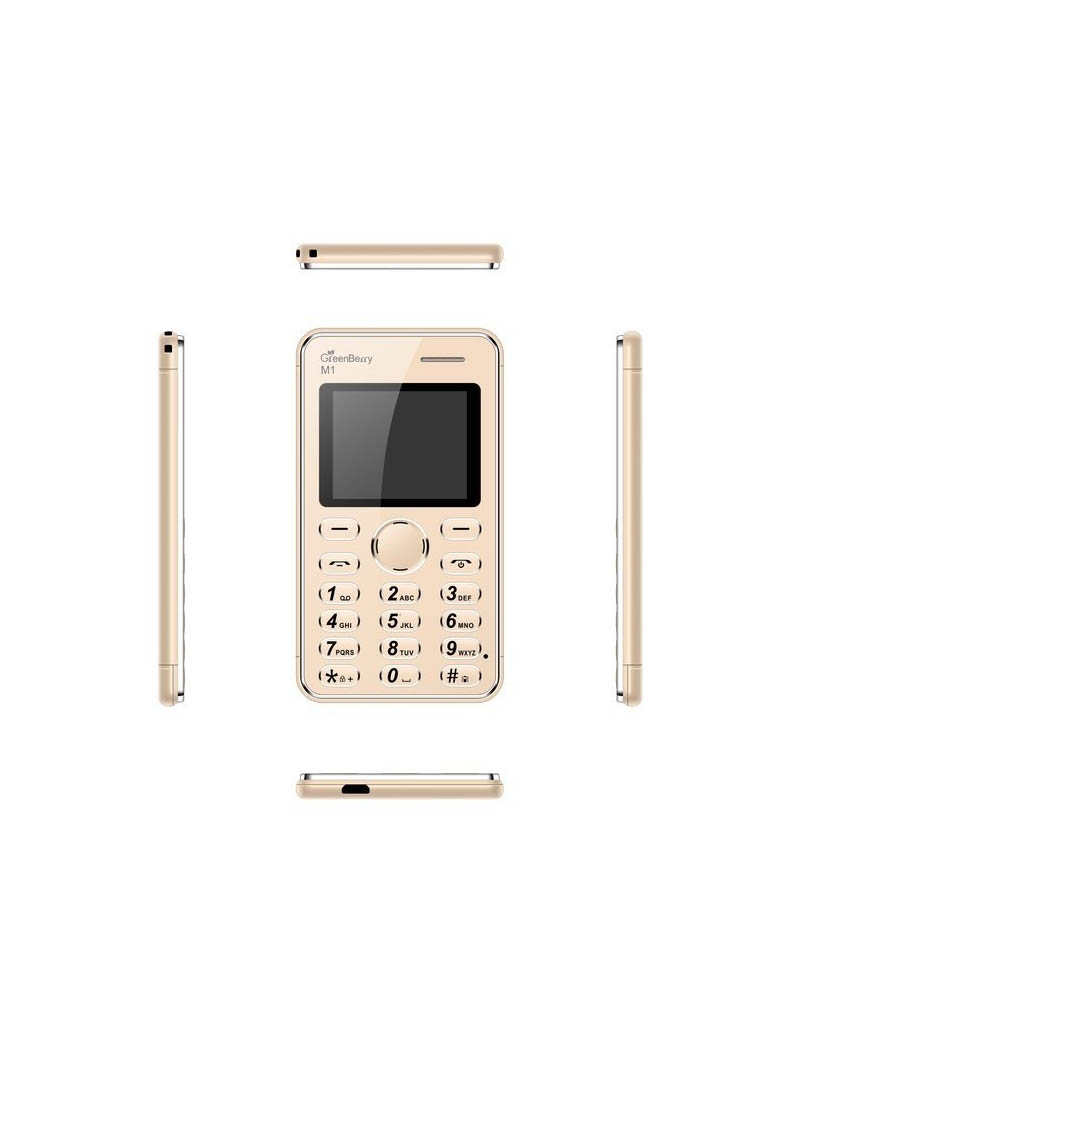 GreenBerry M2 1.77 inch QQVGA Color Display Keypad Ultra Slim Ultra Slim Credit Card Size Light Weight Light Weight MP3 Player -Camera Mobile Phone (Blue,Jet Black,Golden)